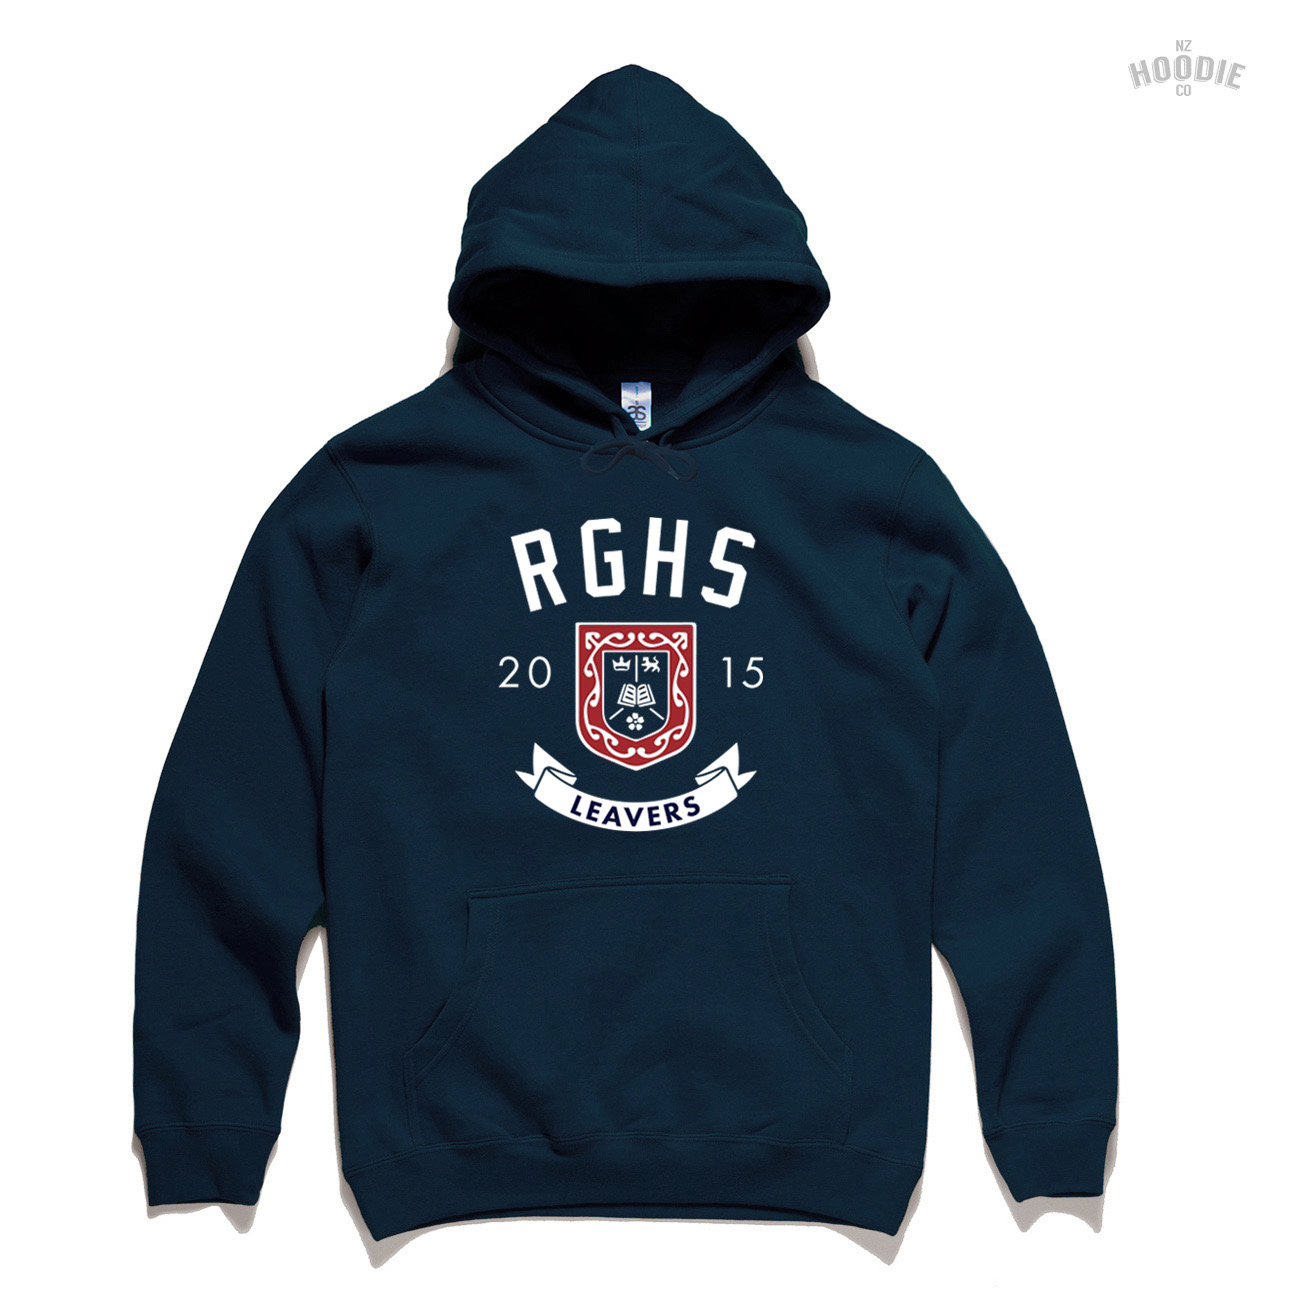 Rotorua-Girls-High-School-2015-Leavers-hoodie-navy-front.jpg